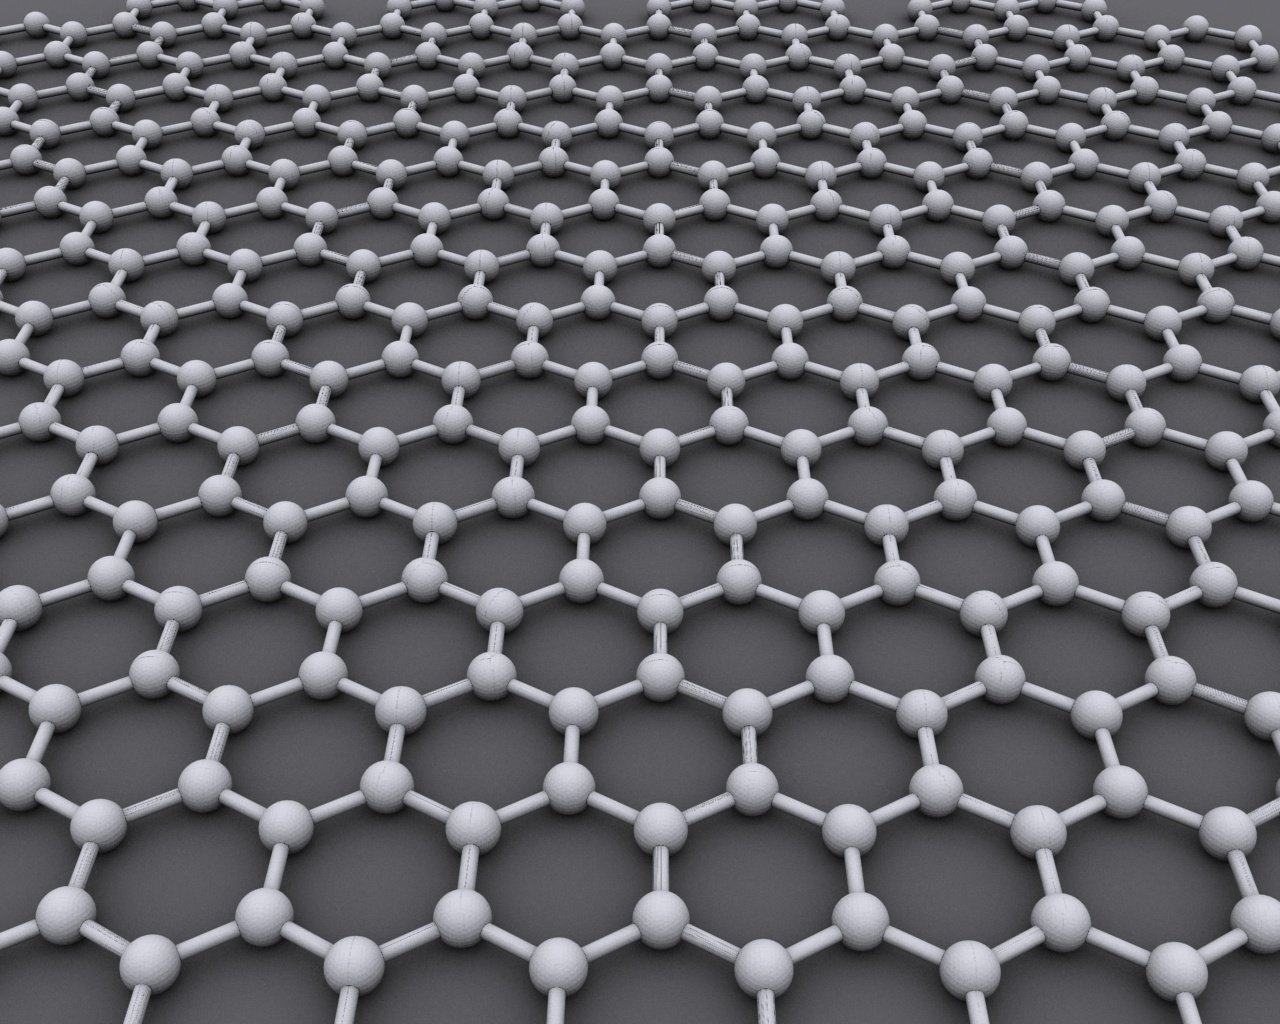 3-Exciting-Advancements-in-the-Materials-Science-Sector.jpg